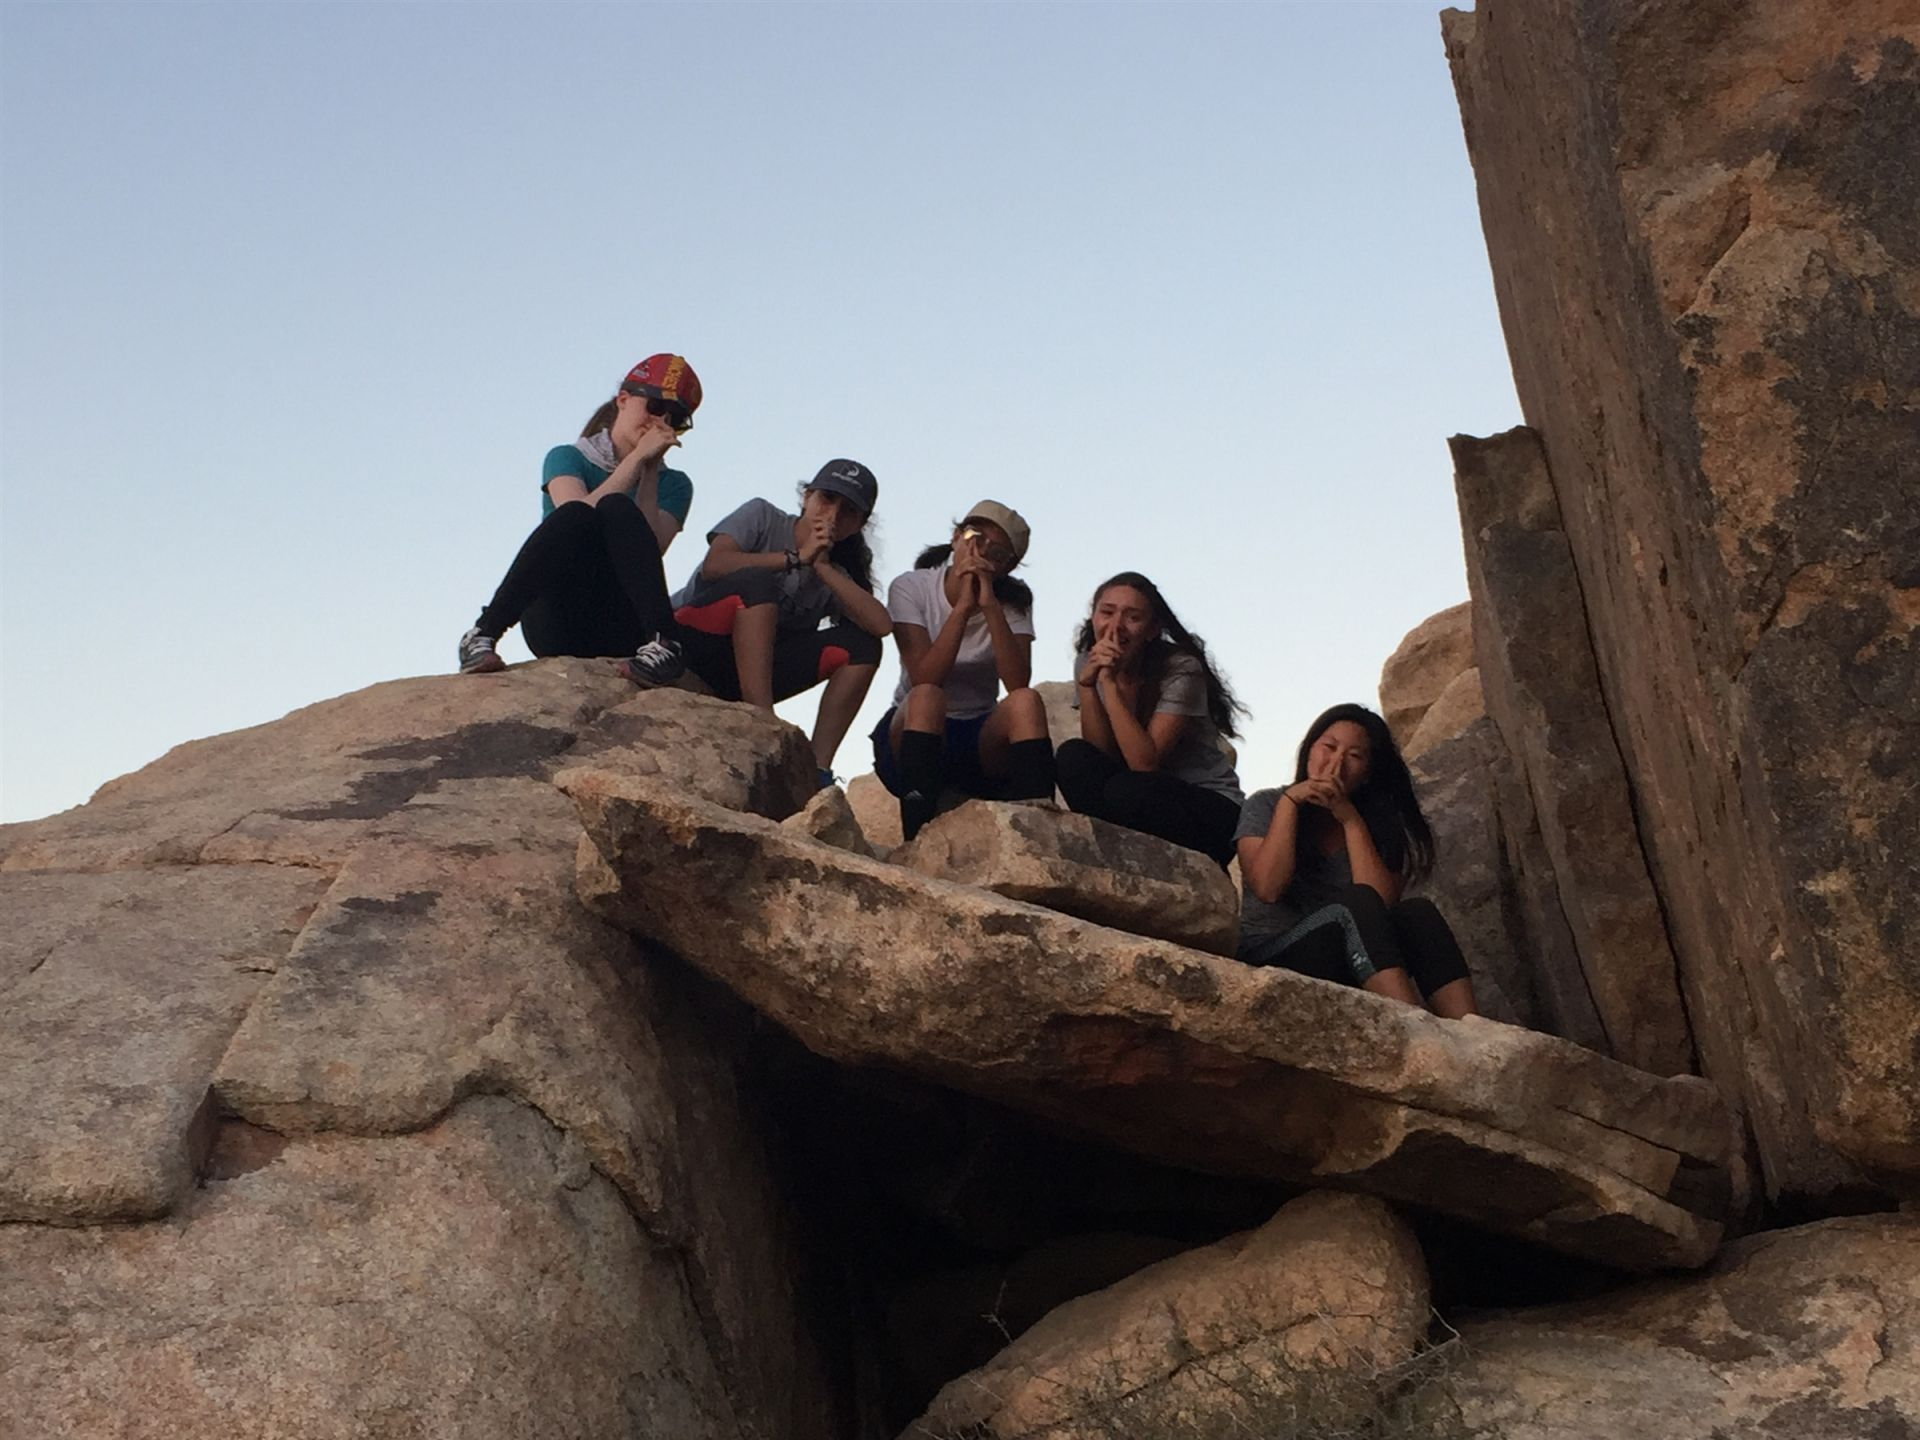 Freshmen on their Outdoor Education trip to Joshua Tree.